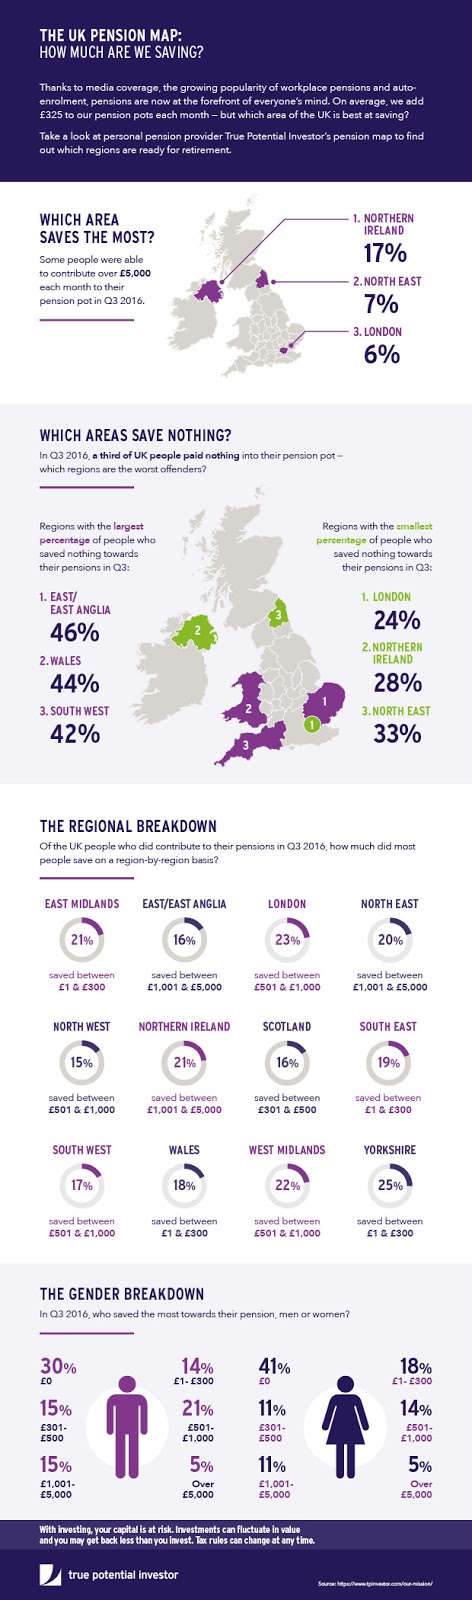 UK pensions map infographic